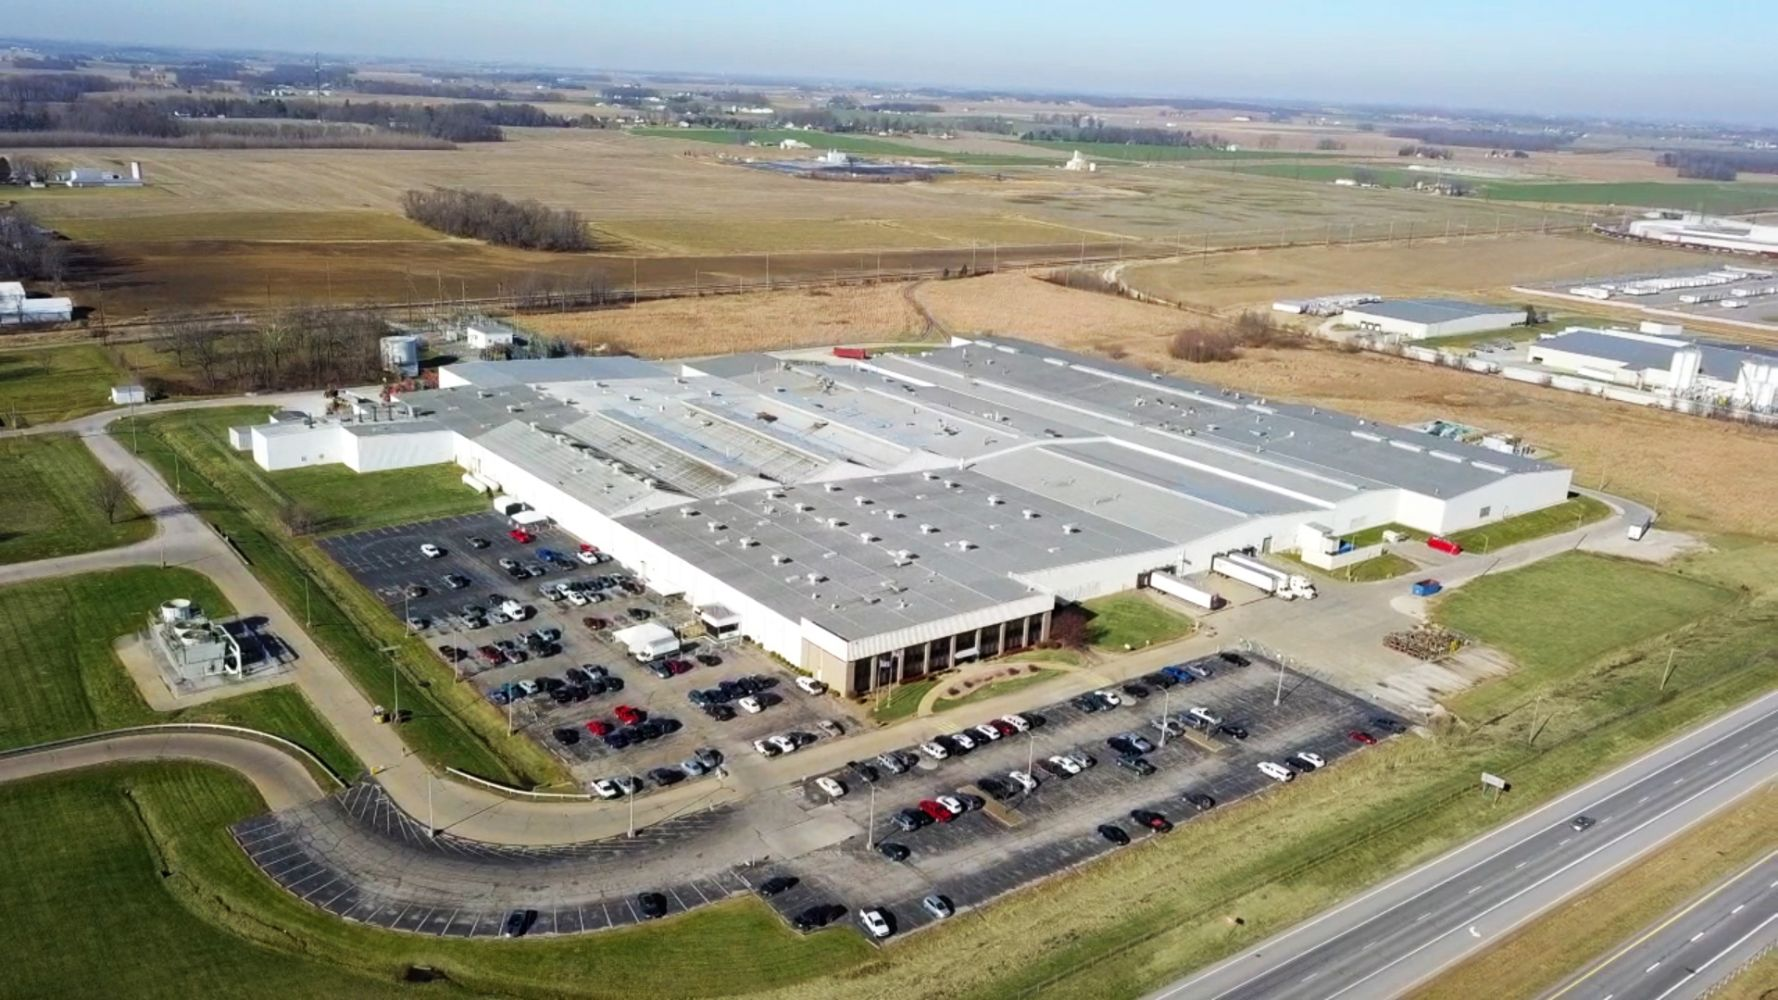 Day 2 - 660k Sq Ft Manufacturing Facility 700+ Lots - Fanuc Robots, Bystronic Grinders, Billco Washers, Allen-Bradley and Toshiba Components